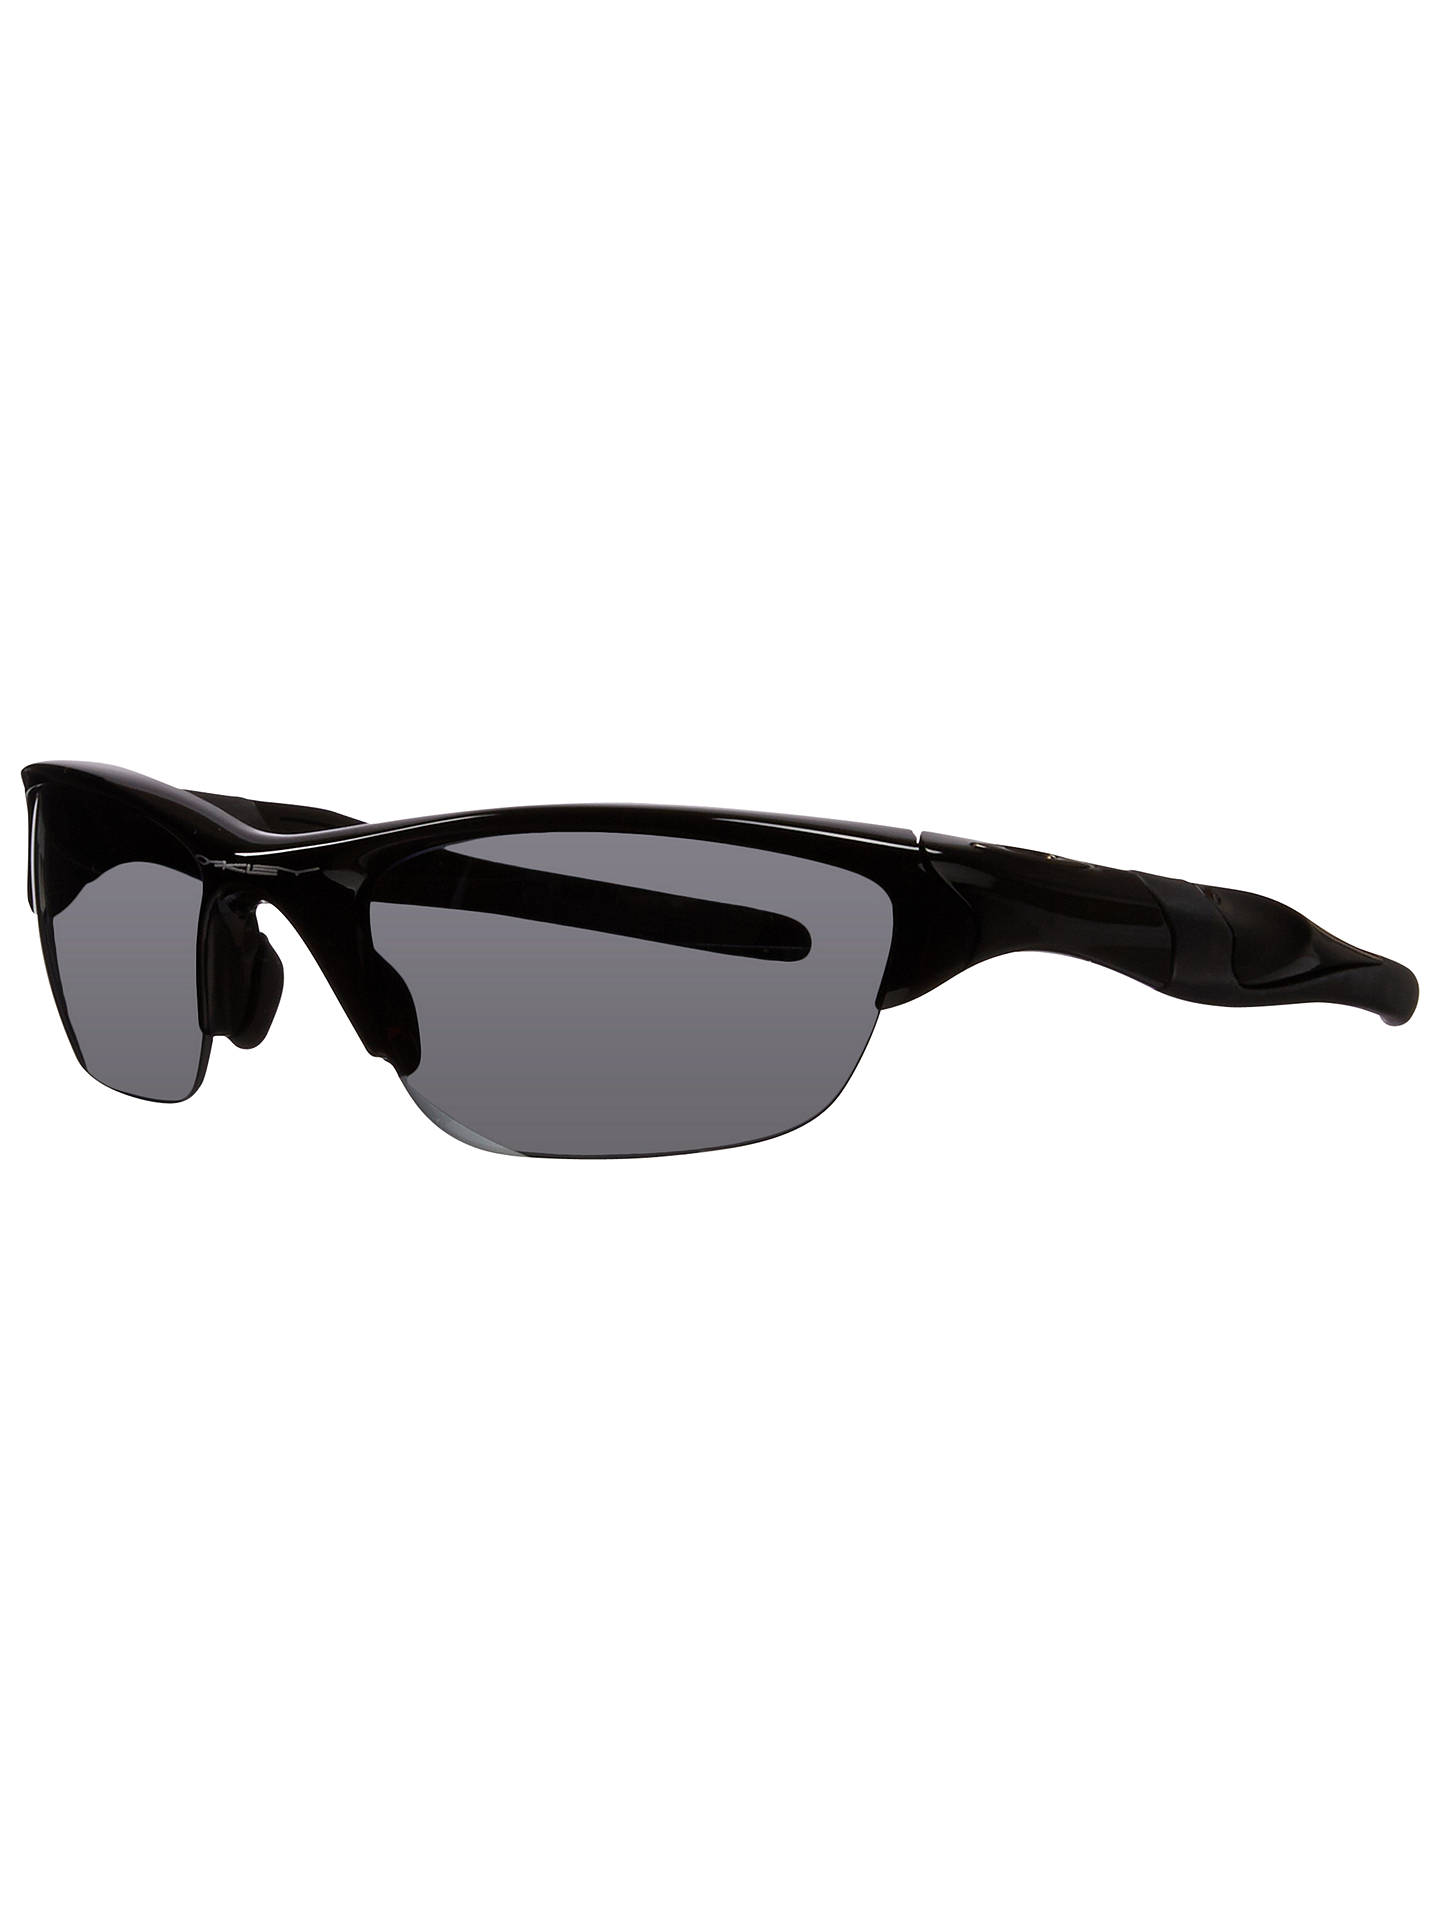 89a1dccf46 Oakley OO9144 Half Jacket 2.0 Rectangular Polarised Sunglasses at ...